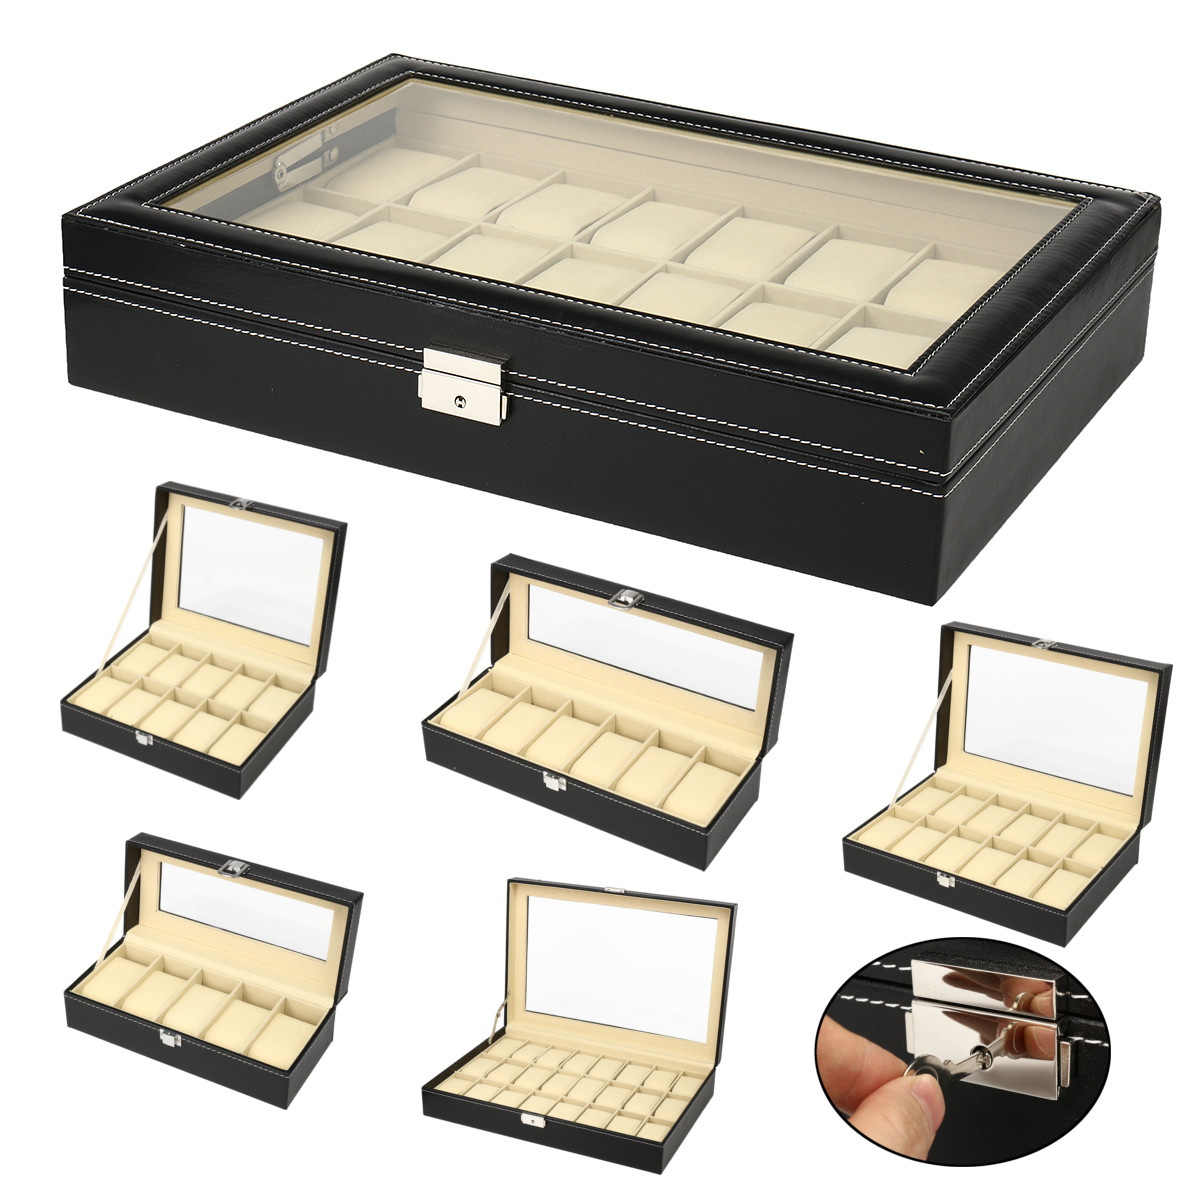 5/6/10/12 Grids PU Leather Watch Box Case Professional Holder Organizer Watches Jewelry Boxes Case Display Rings Storage